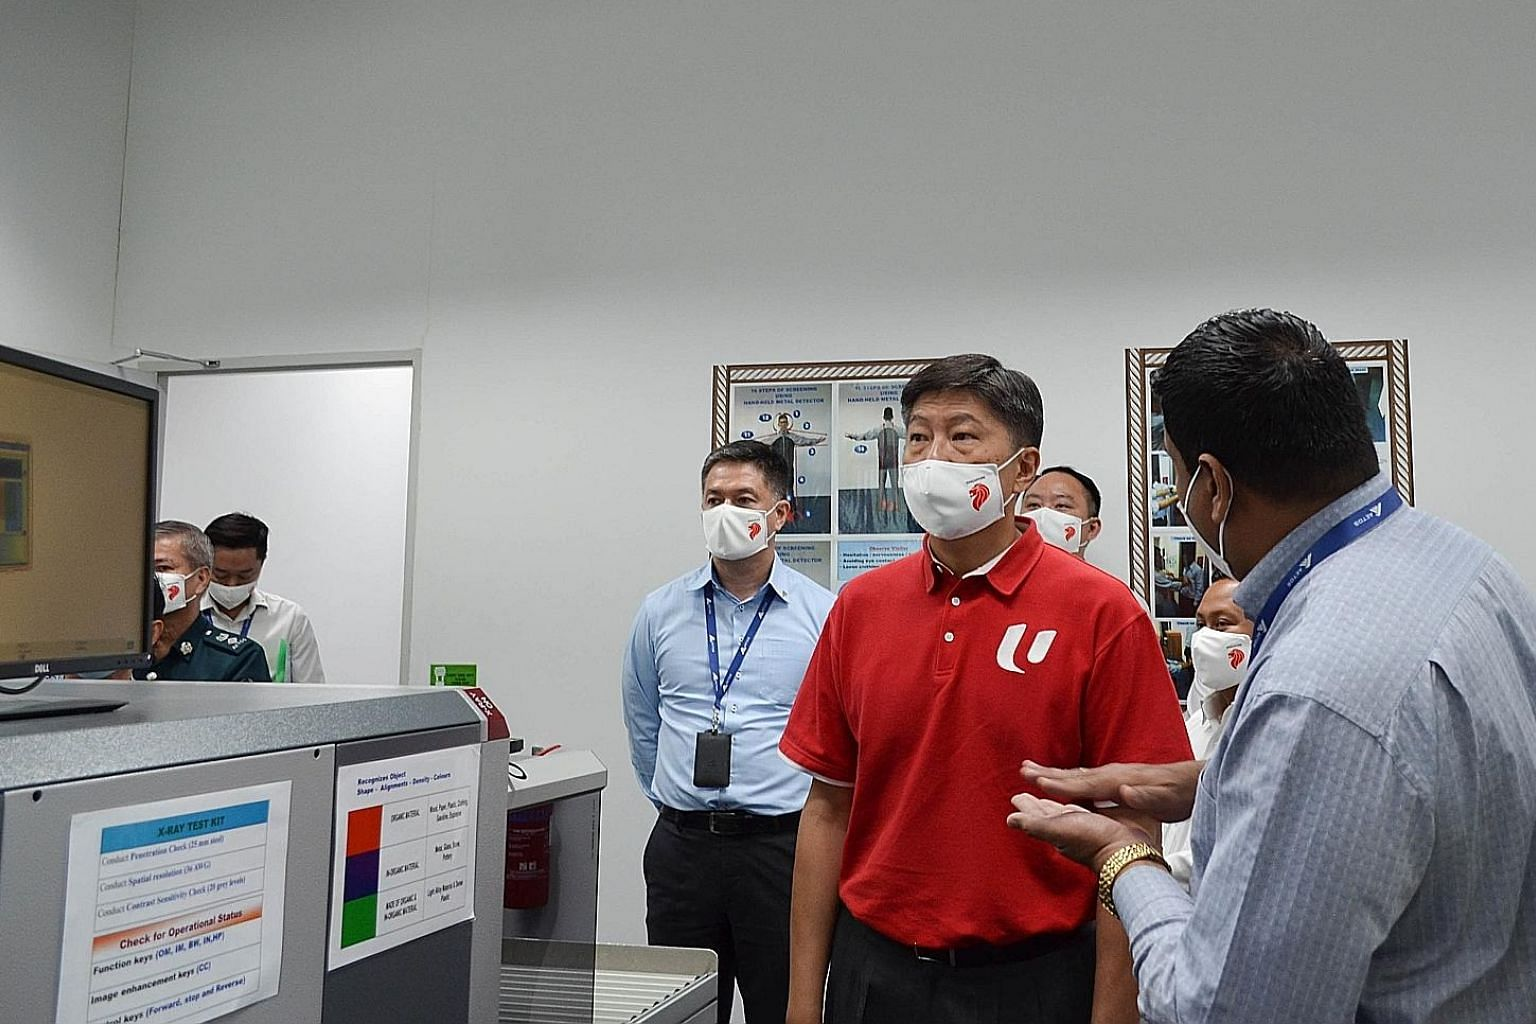 NTUC Secretary-General Ng Chee Meng visiting Aetos, where he witnessed the signing of the Memorandum of Understanding between the company and the Union of Security Employees. PHOTO: AETOS HOLDINGS